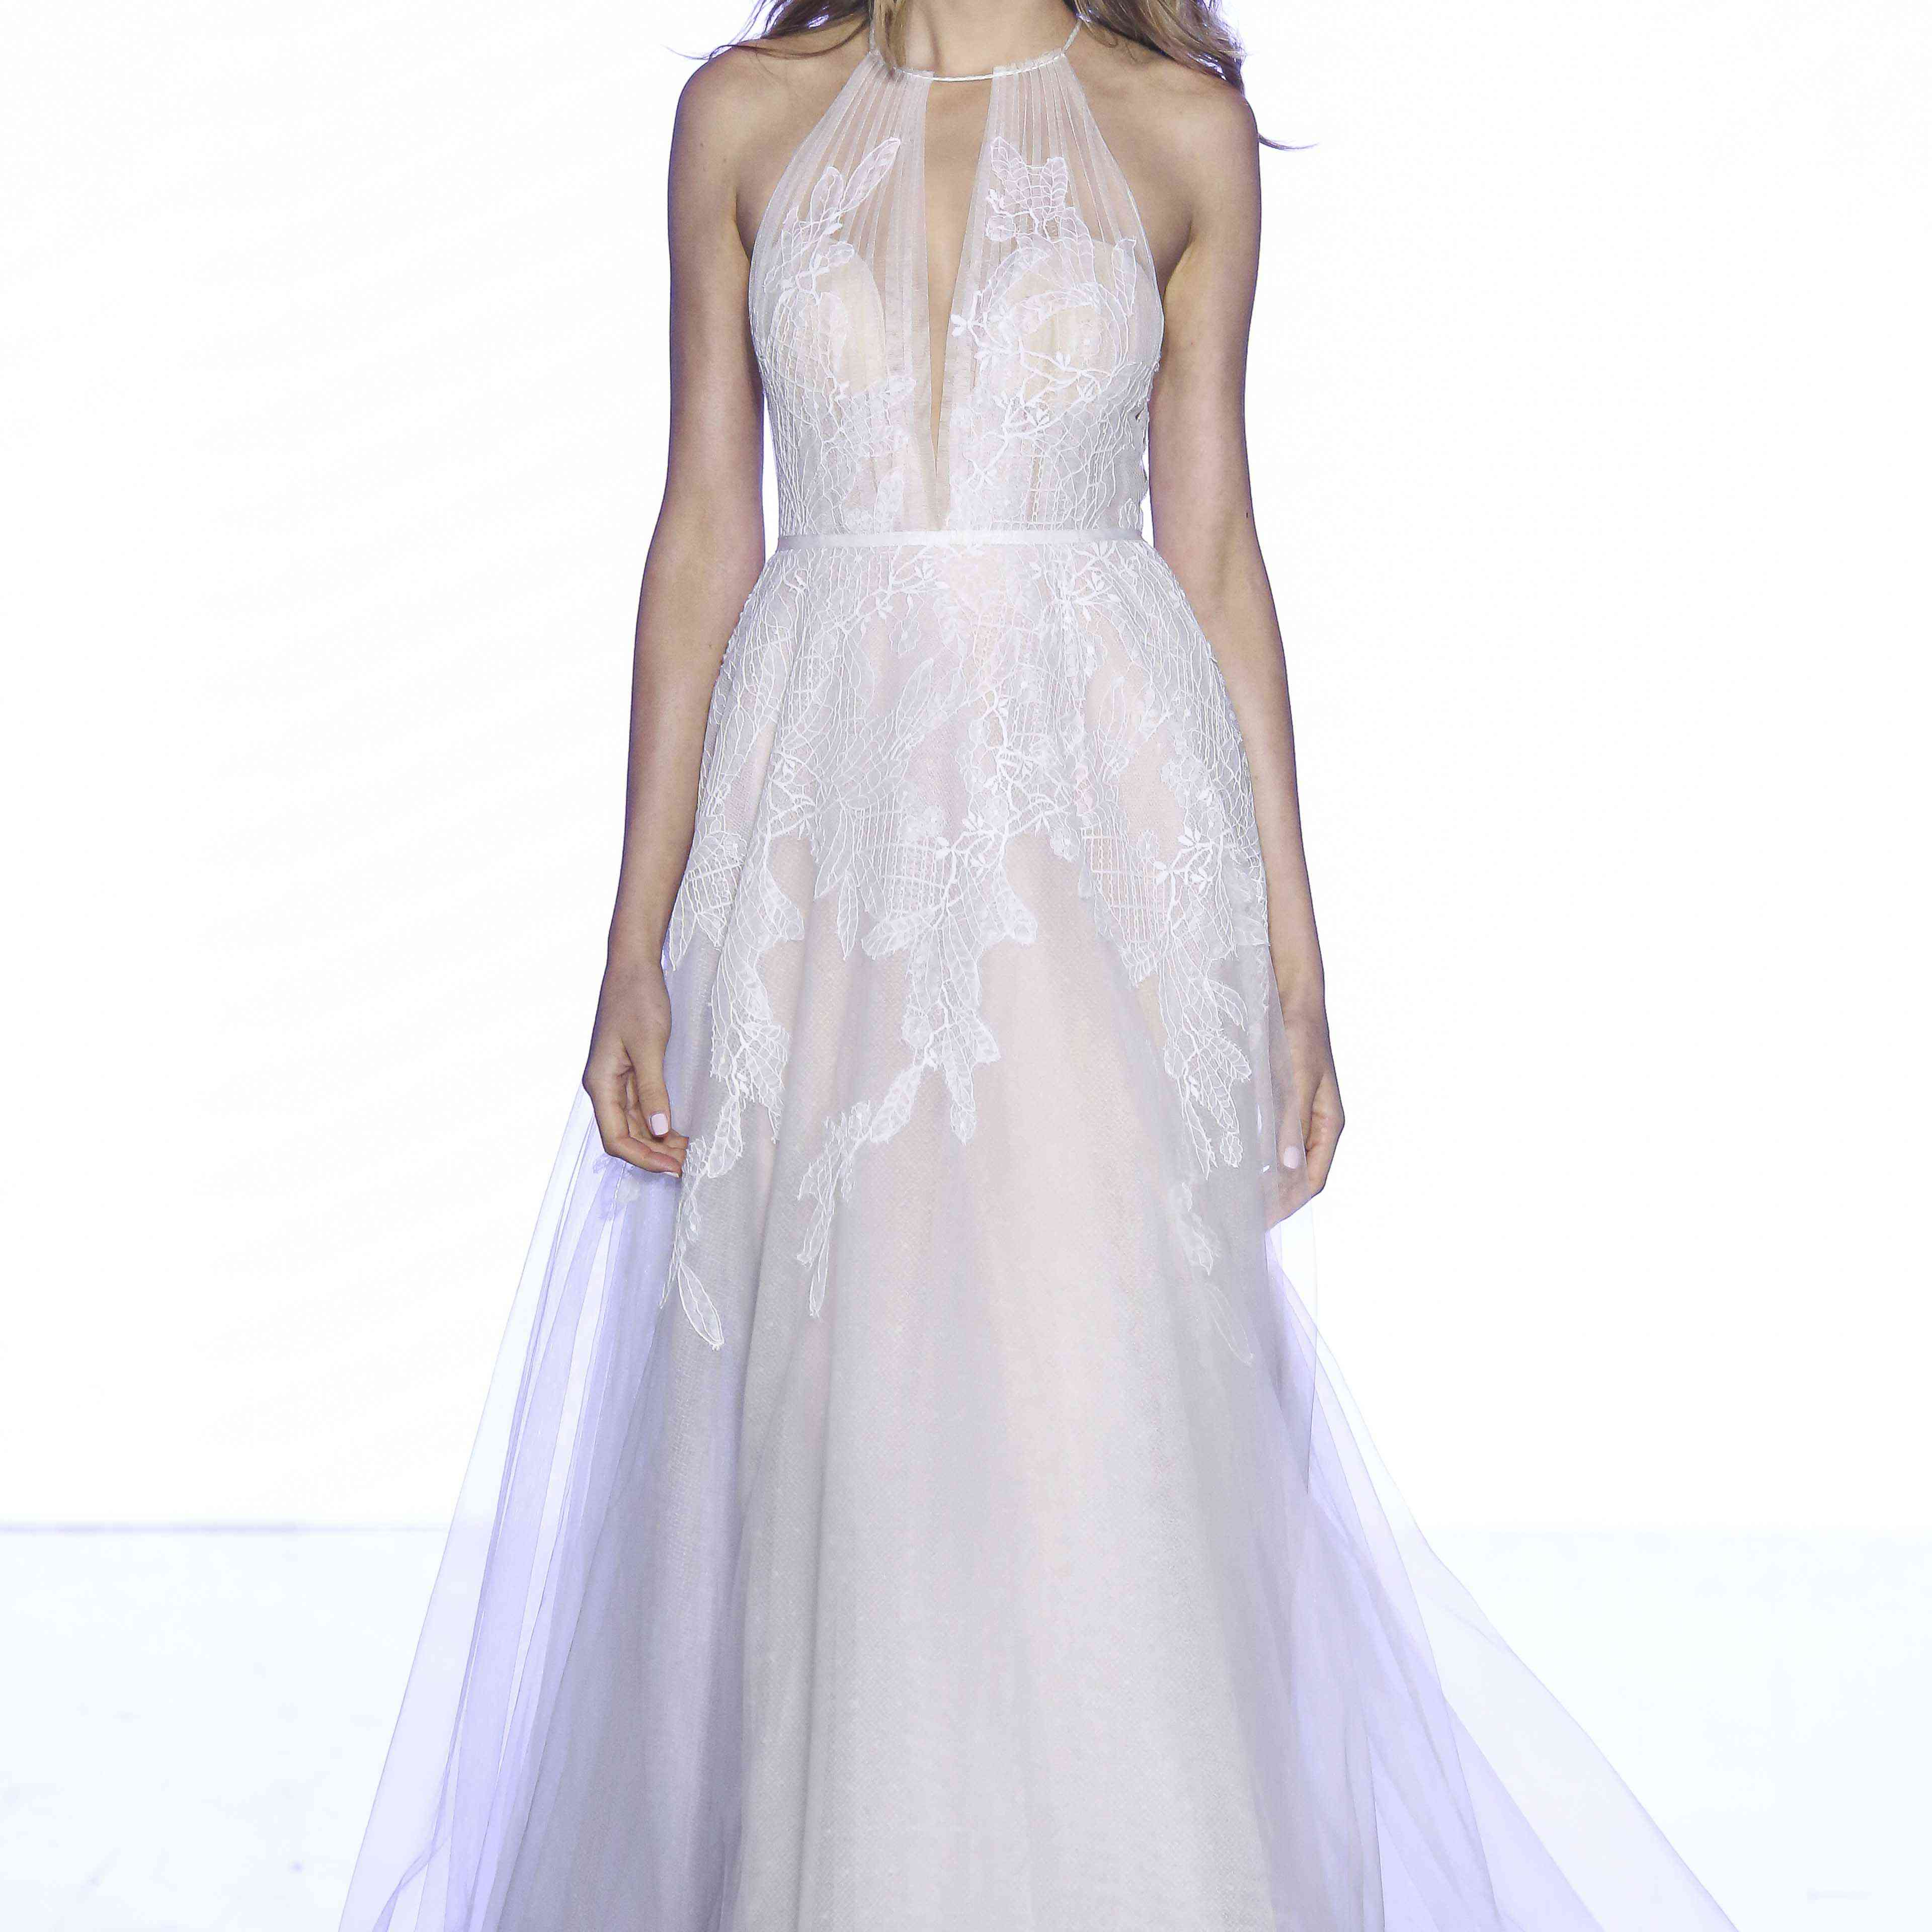 Model in lace and tulle A-line gown with a tie neck